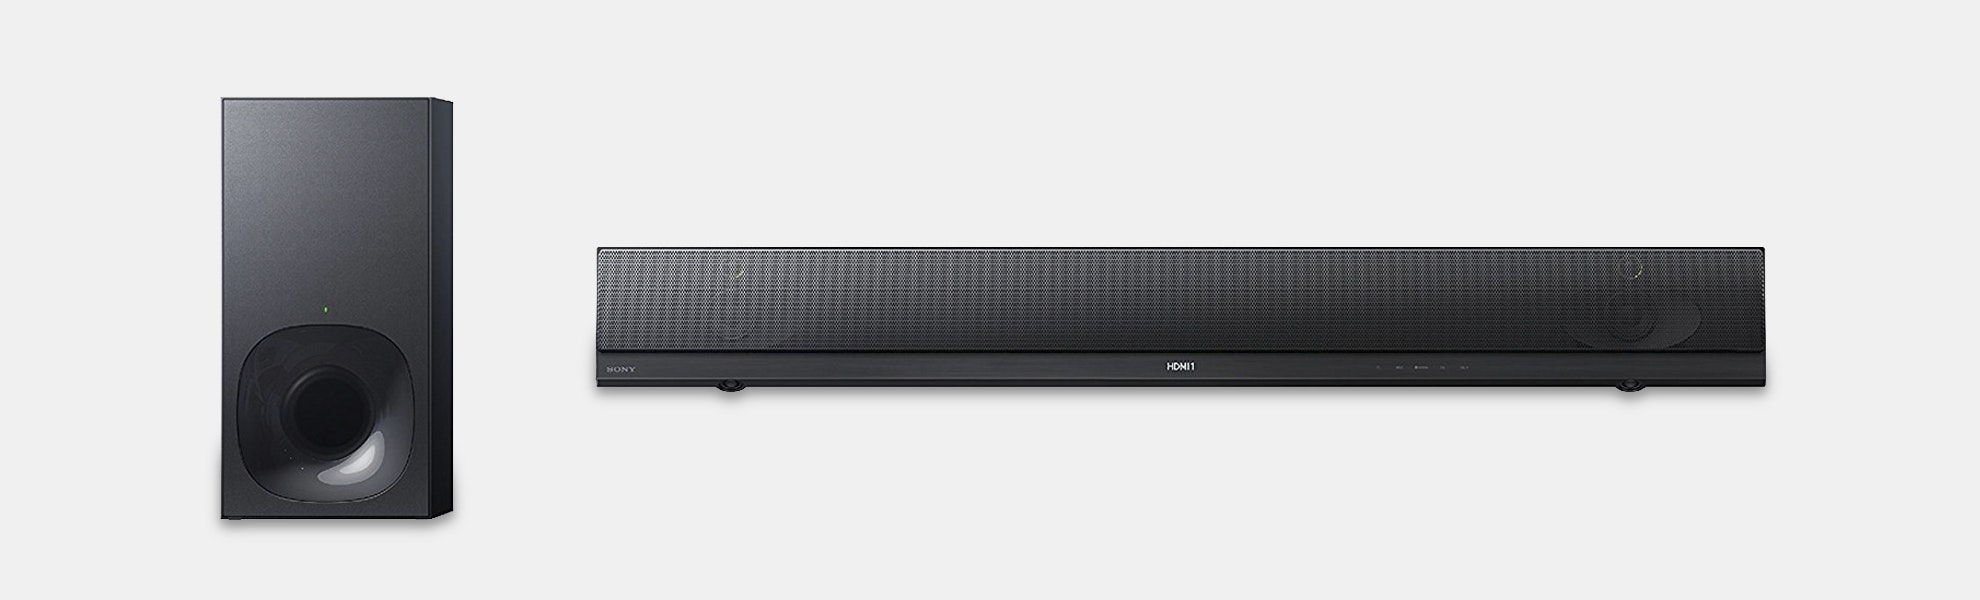 Sony 2.1ch High-Res Audio Soundbar HT-NT5